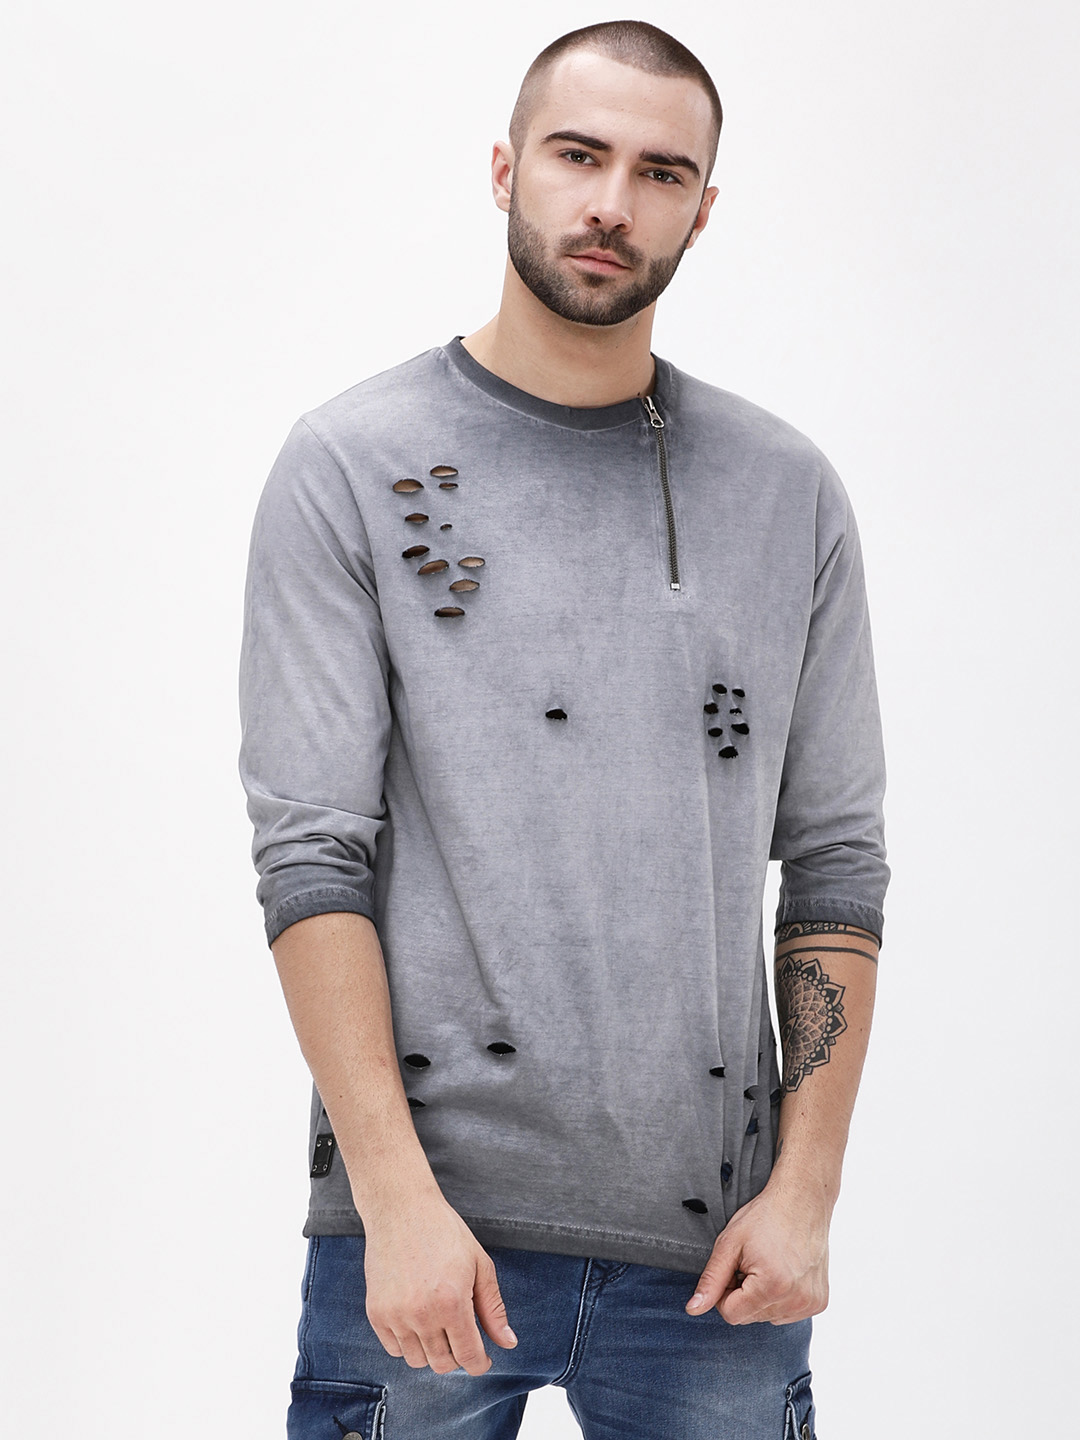 Garcon Grey Pigment Wash Zippered Distressed T-Shirt 1